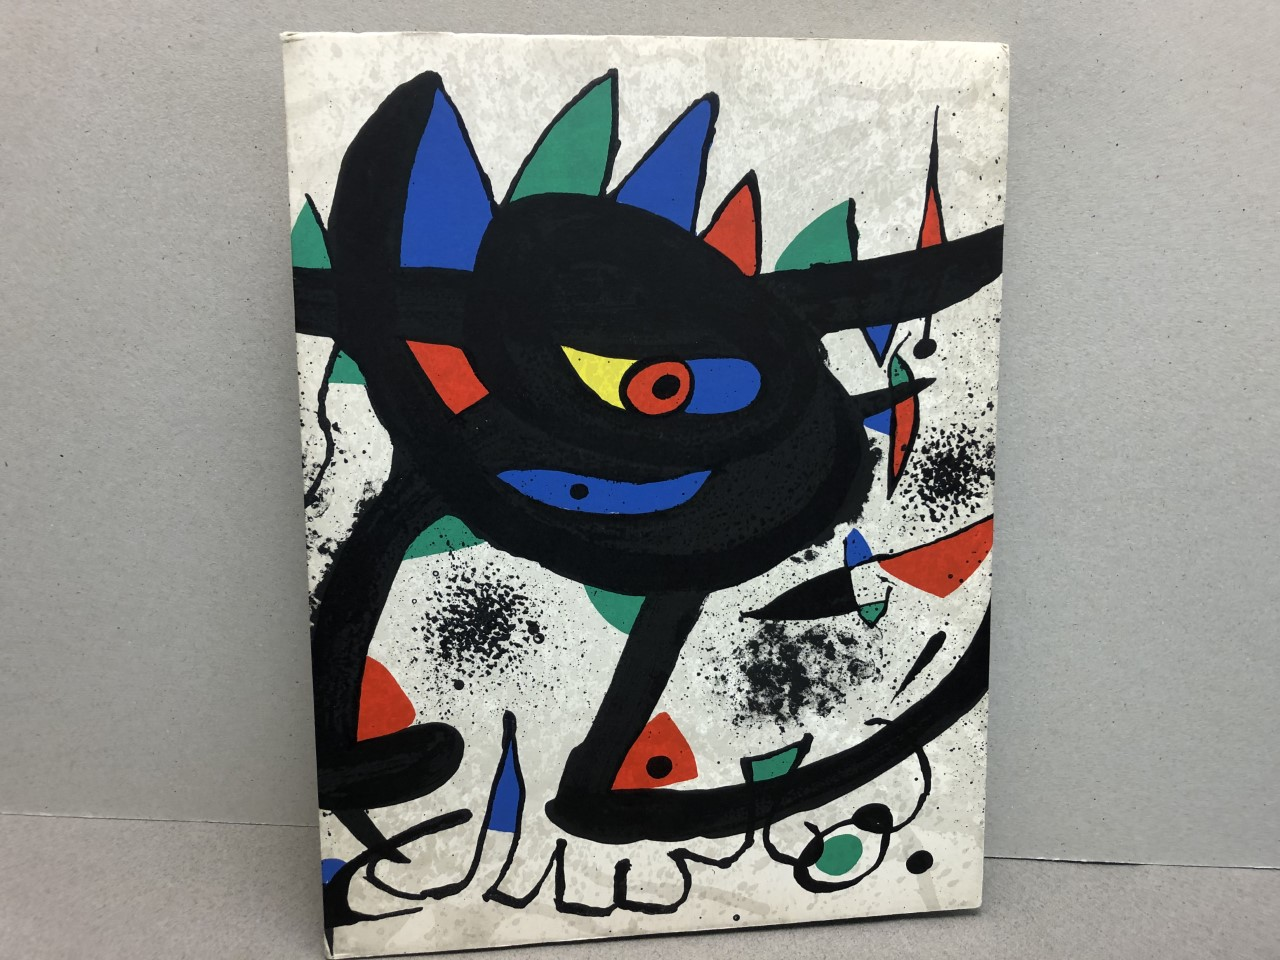 MIRO Painting Gouaches SOBRETEIXIMS Sculpture Etchings with Print